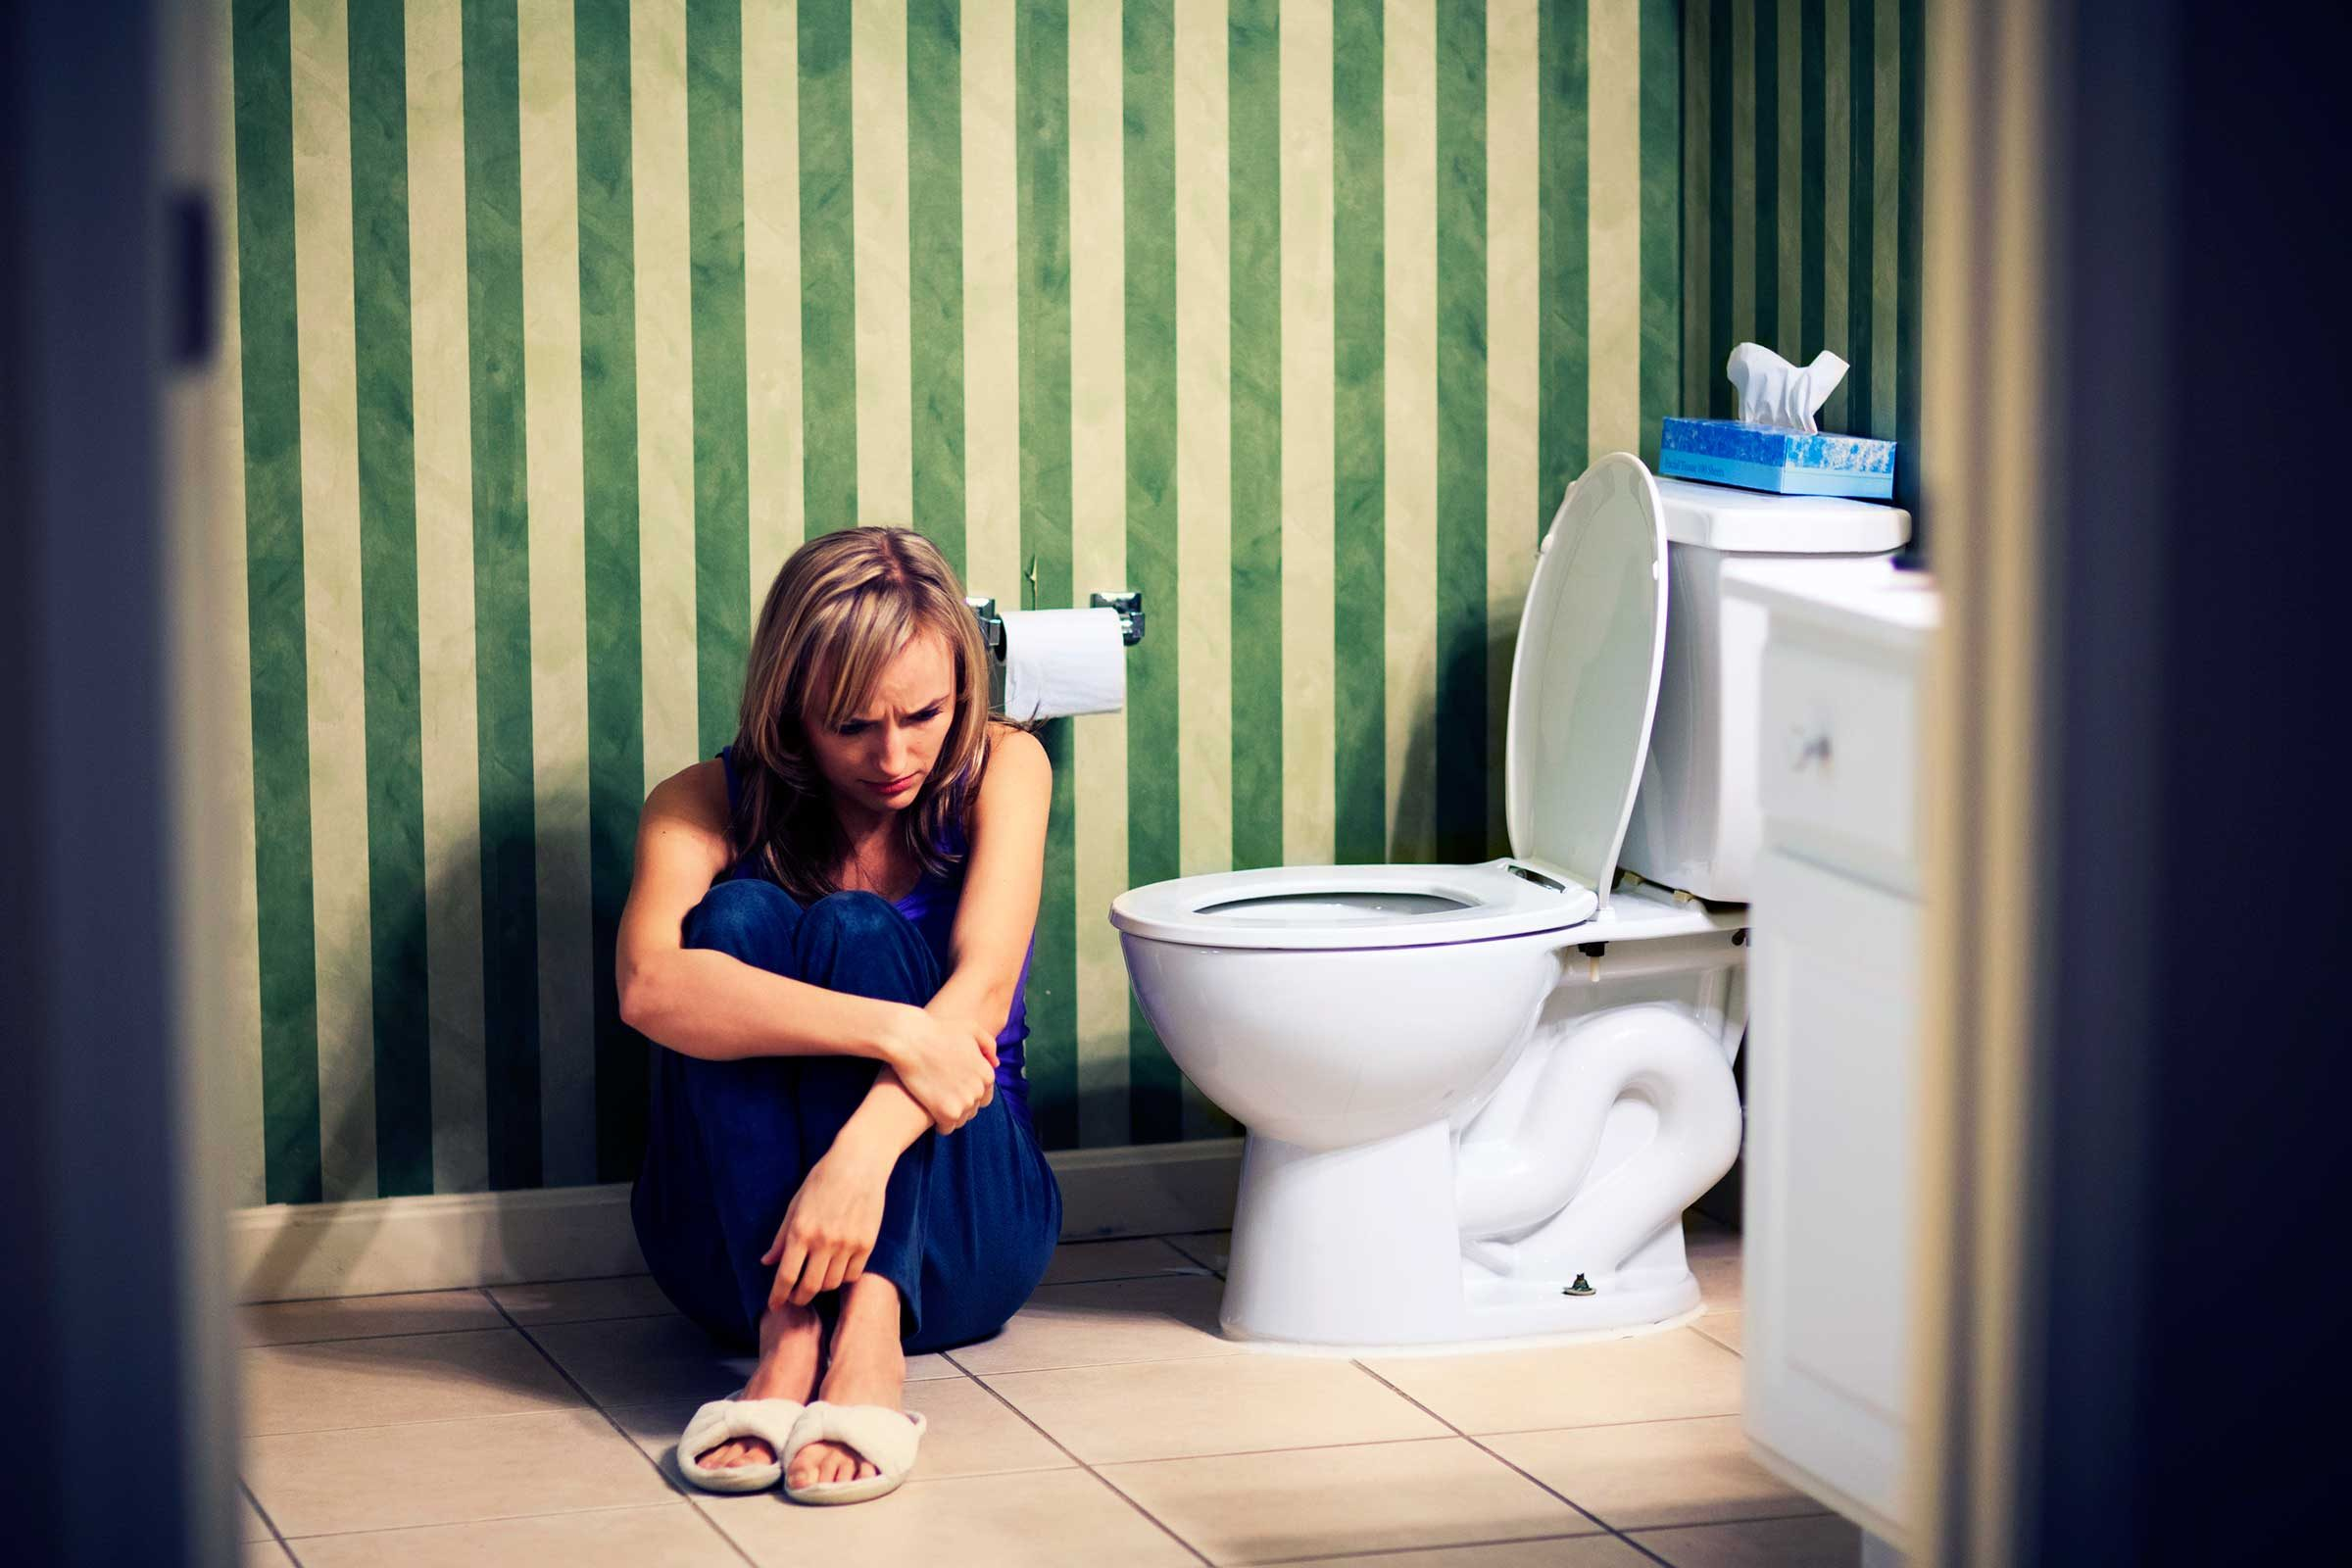 Sesame oil uses and sesame oil health benefits reader 39 s - How to use the bathroom when constipated ...